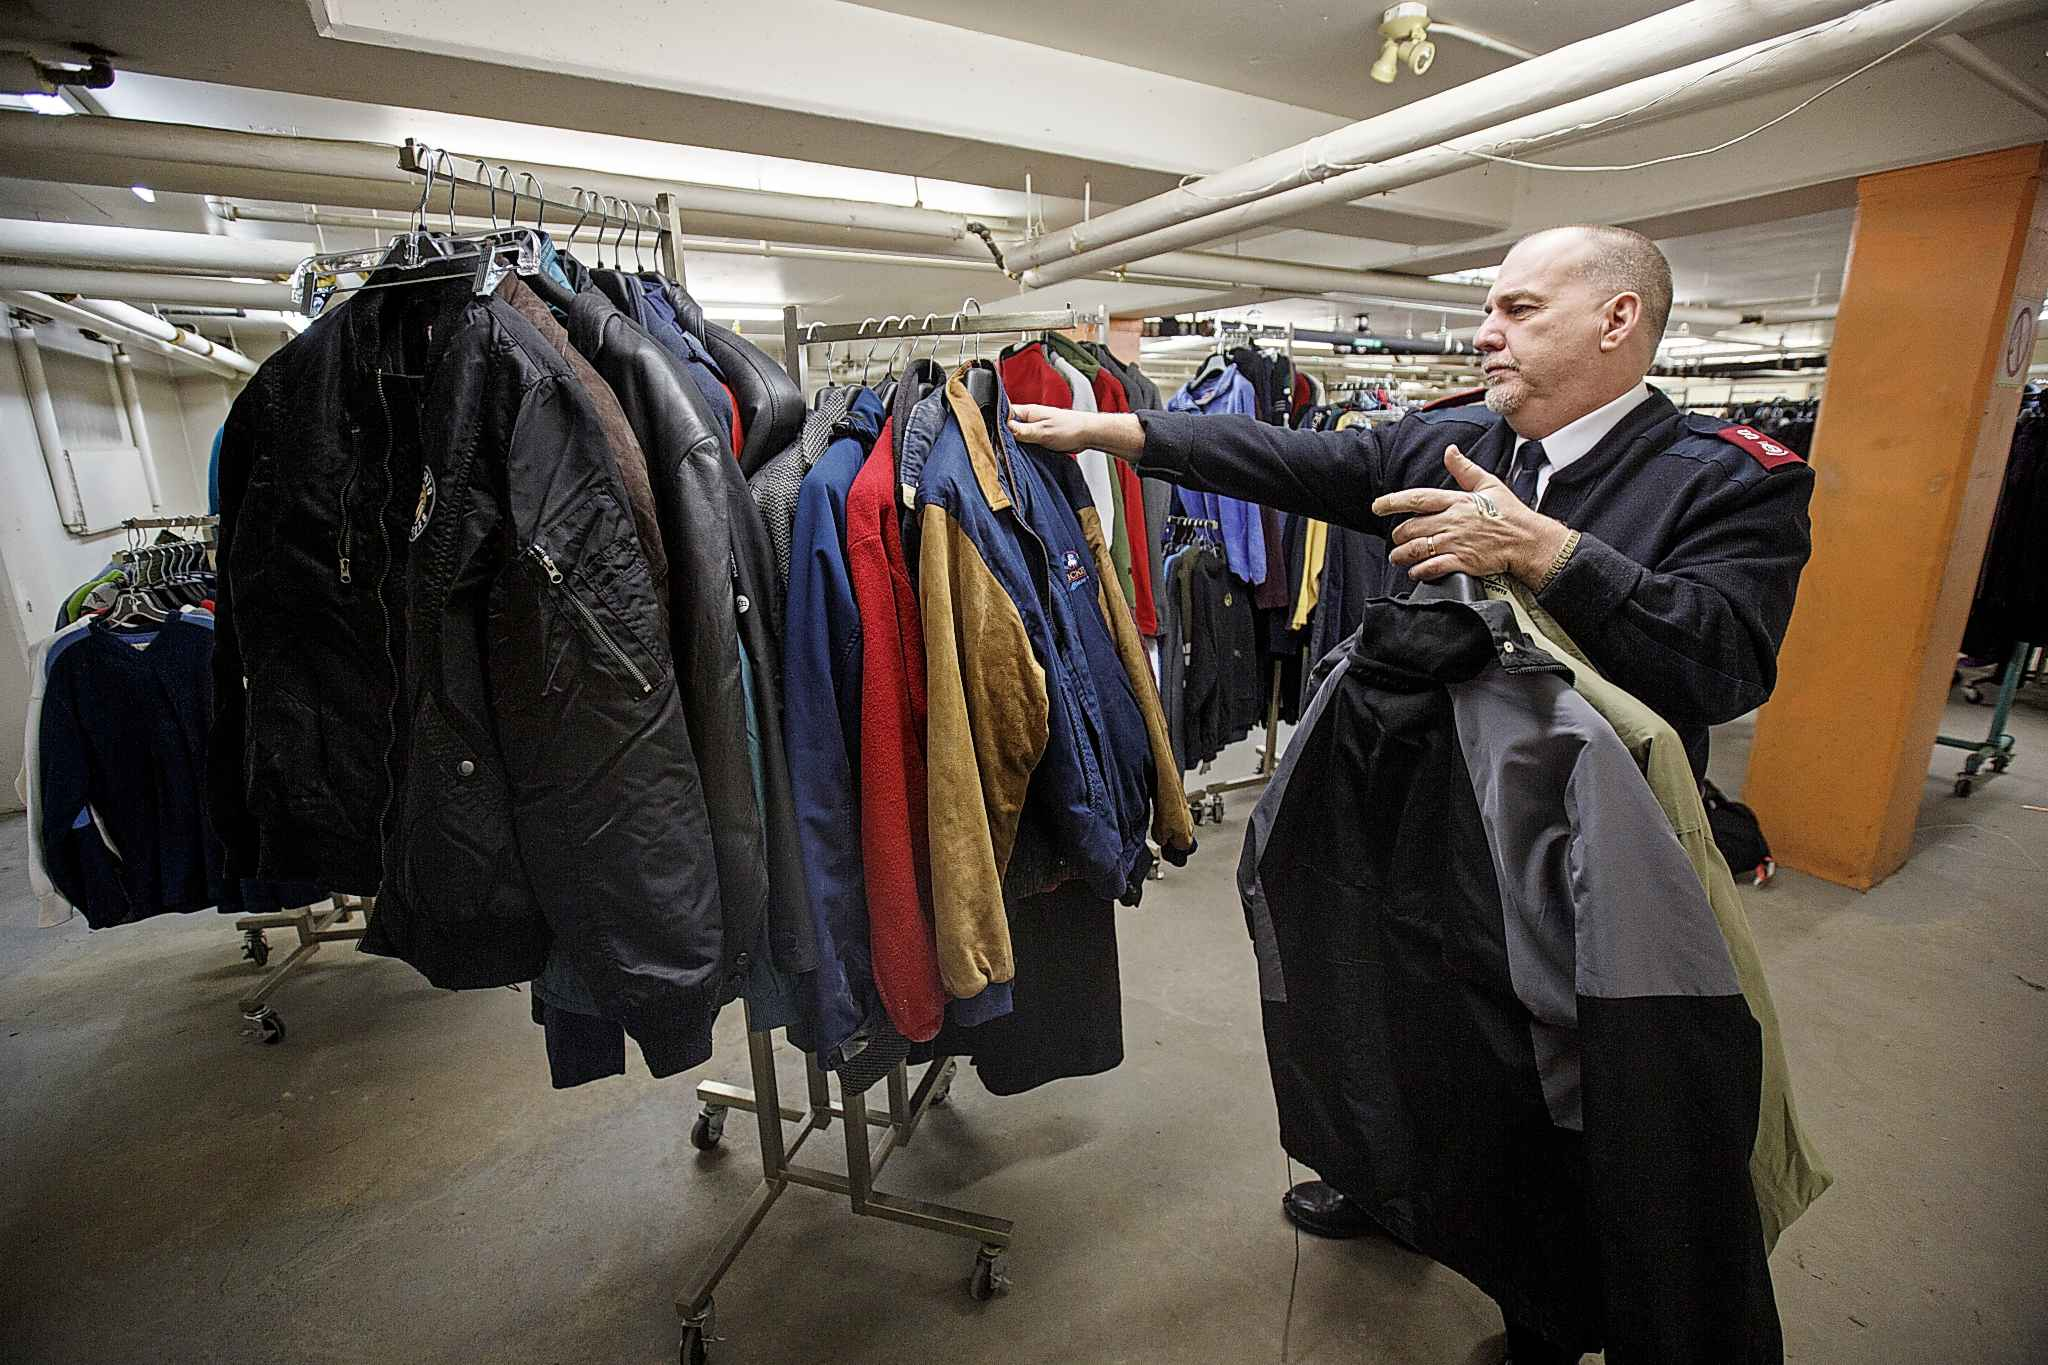 The Salvation Army also provides winter clothing. (Mike Deal / Winnipeg Free Press)